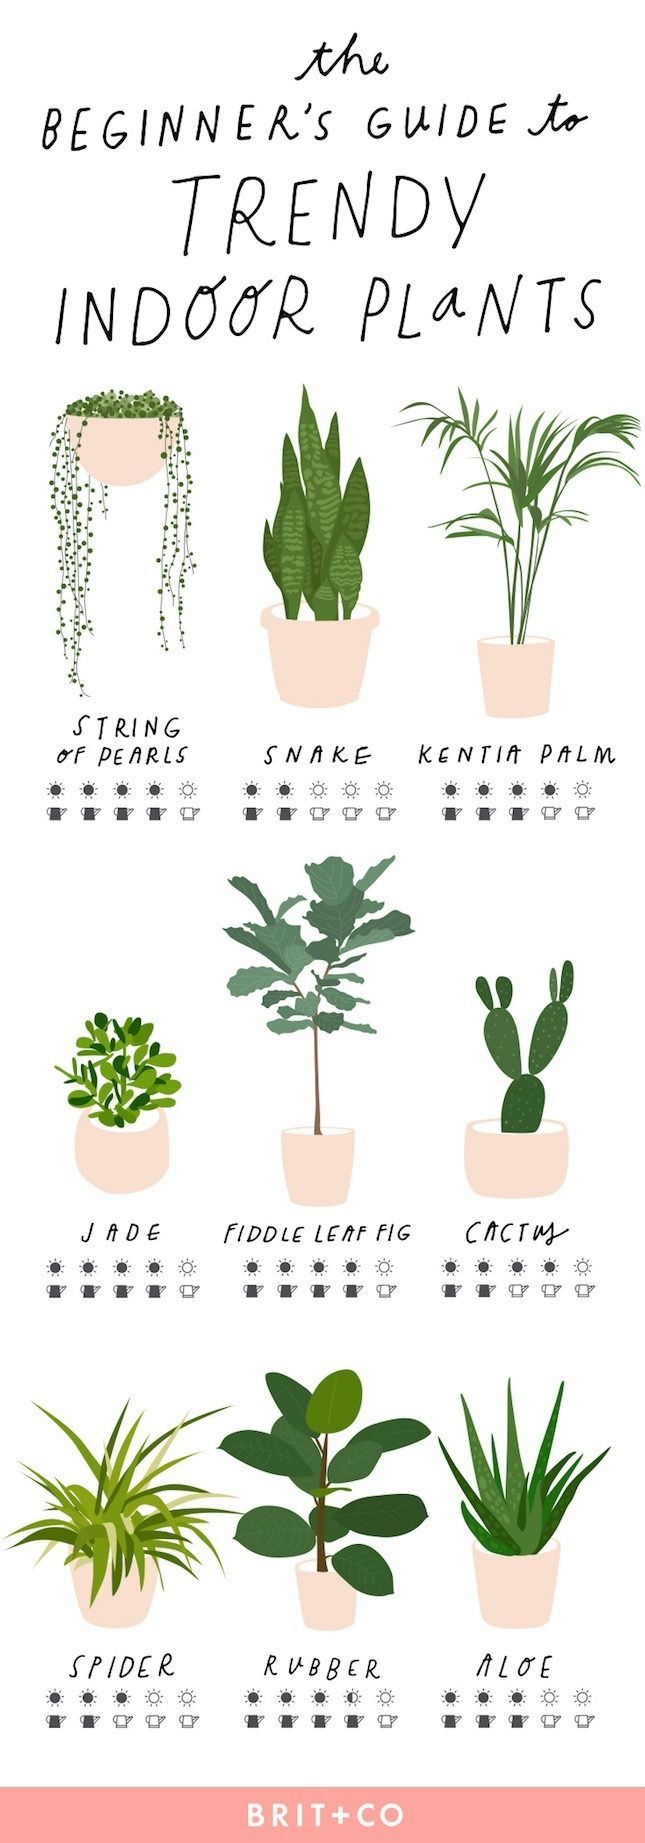 Keep your indoor plants strong   healthy with this simple beginner's guide to trendy indoor plants.